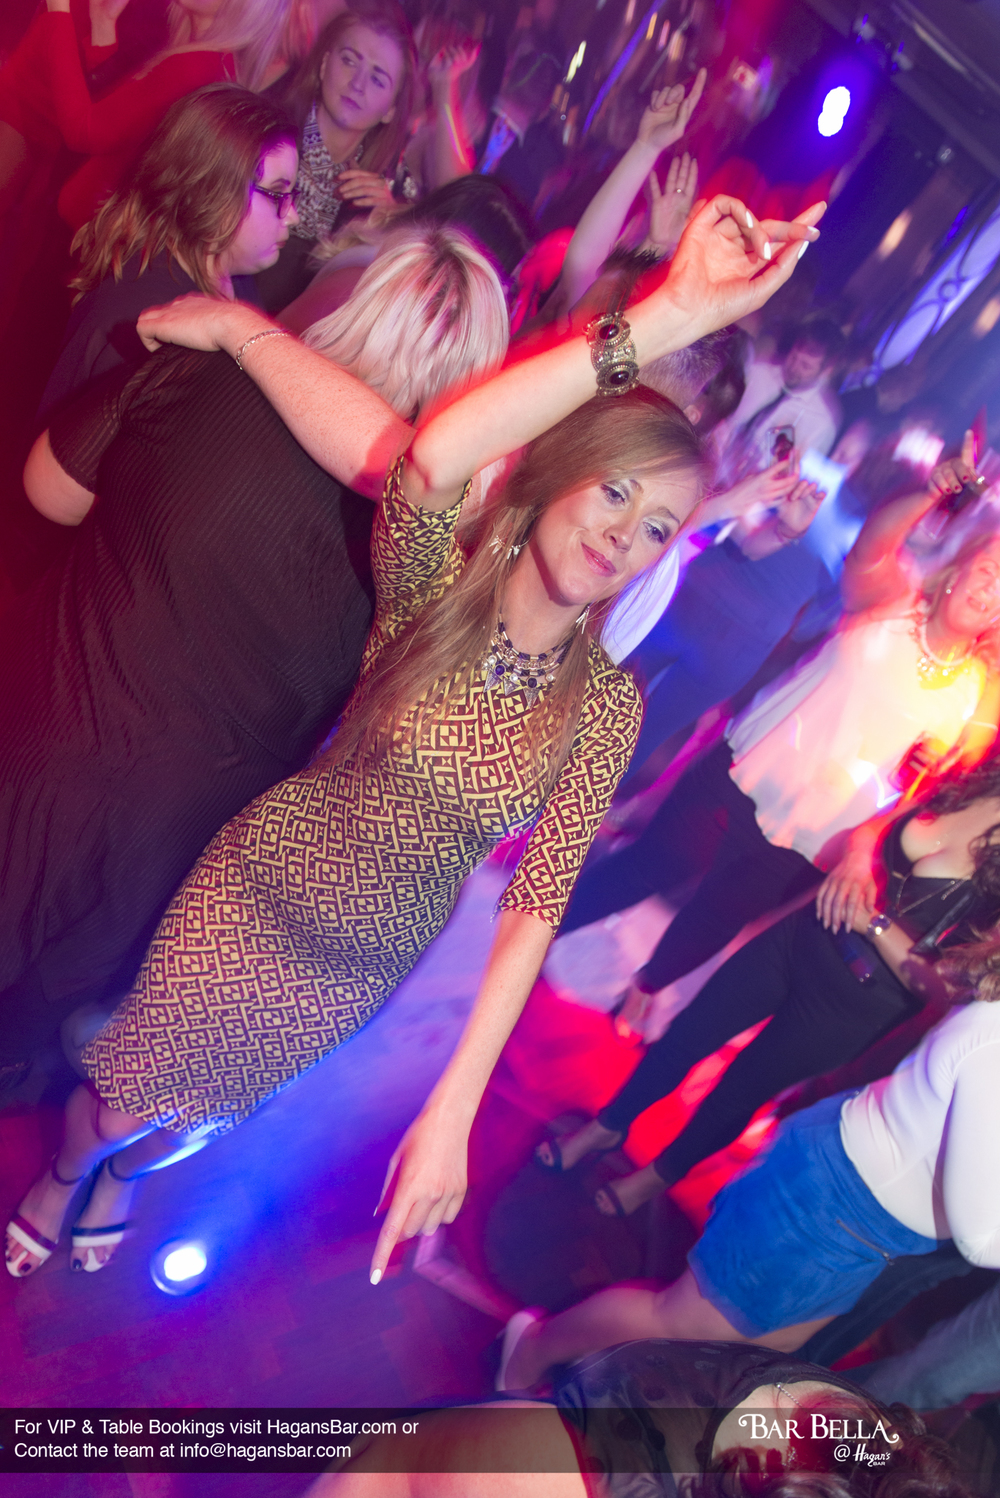 20160228-Hagans Feb 26-27th 2016 DNG-6678.jpg